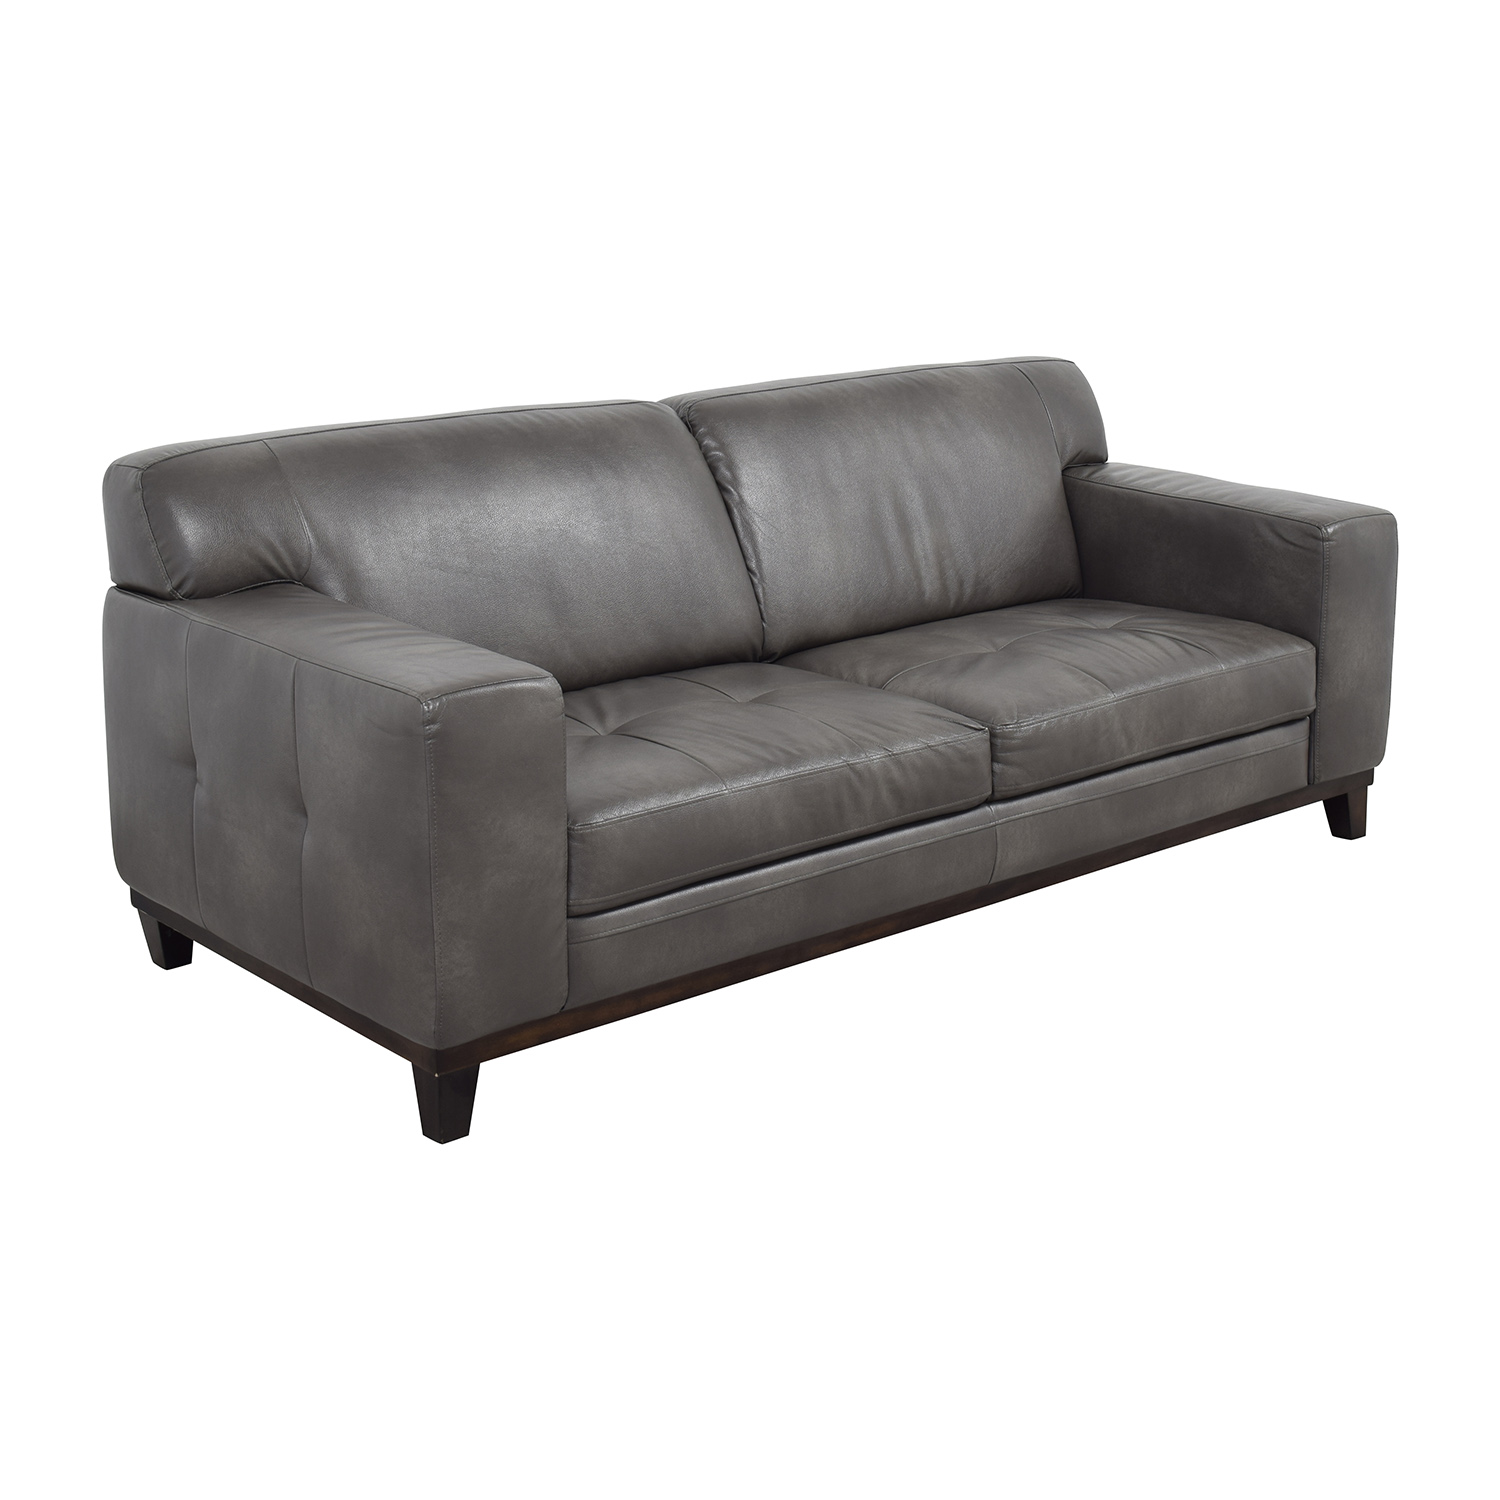 46 Off Raymour Flanigan Raymour Flanigan Grey Leather Couch Sofas